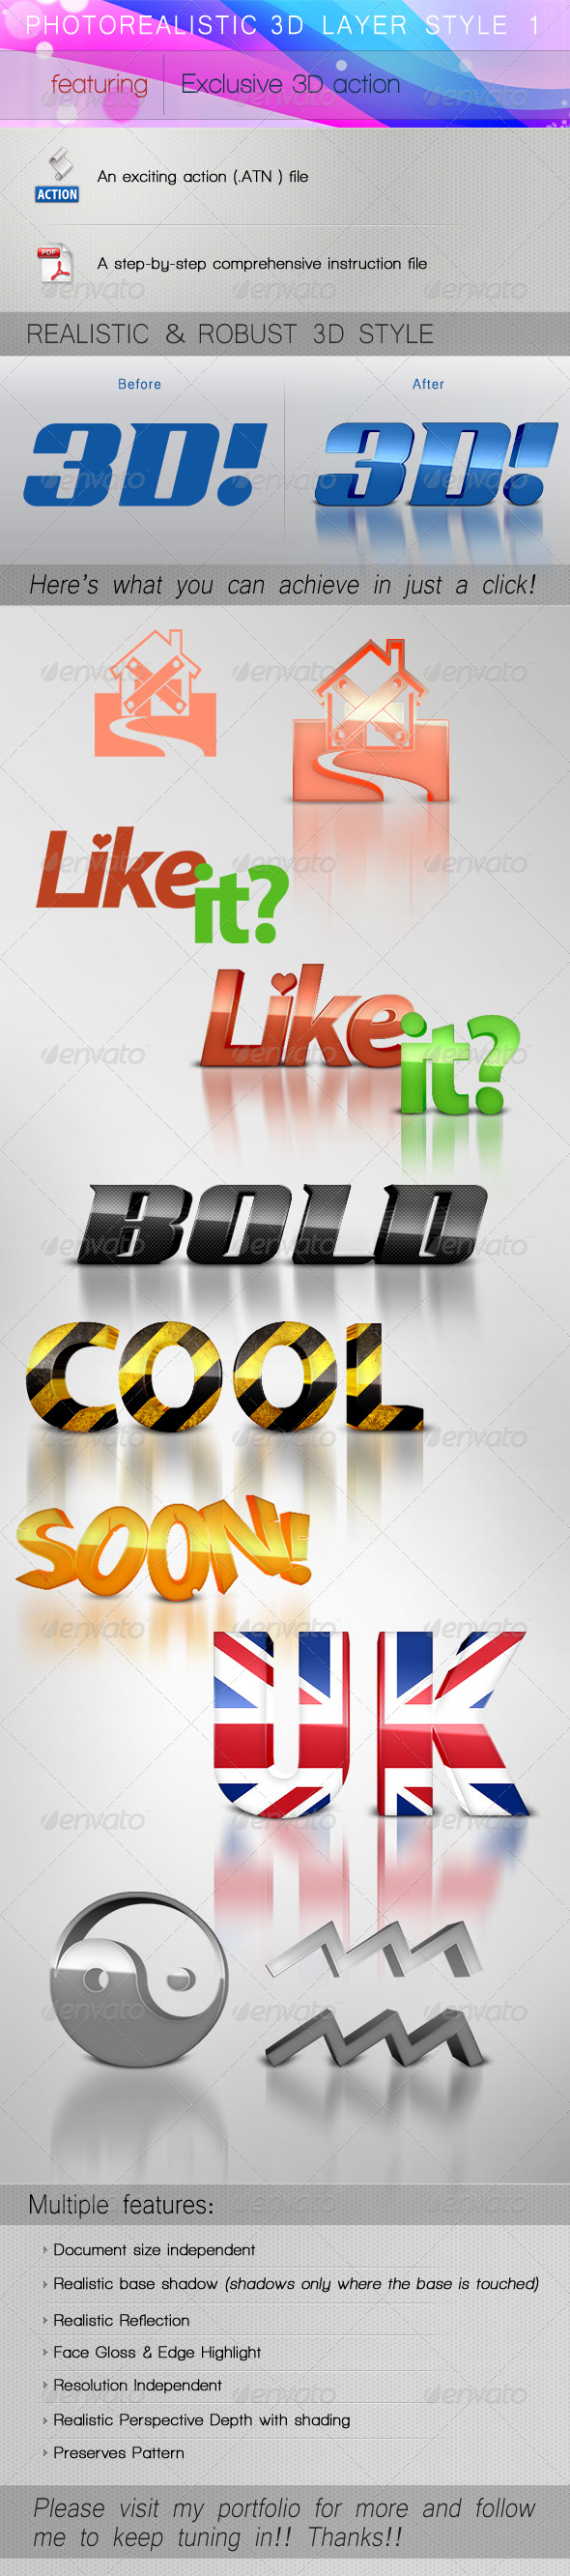 GraphicRiver PHOTOREALISTIC 3D LAYER STYLE 1 140303